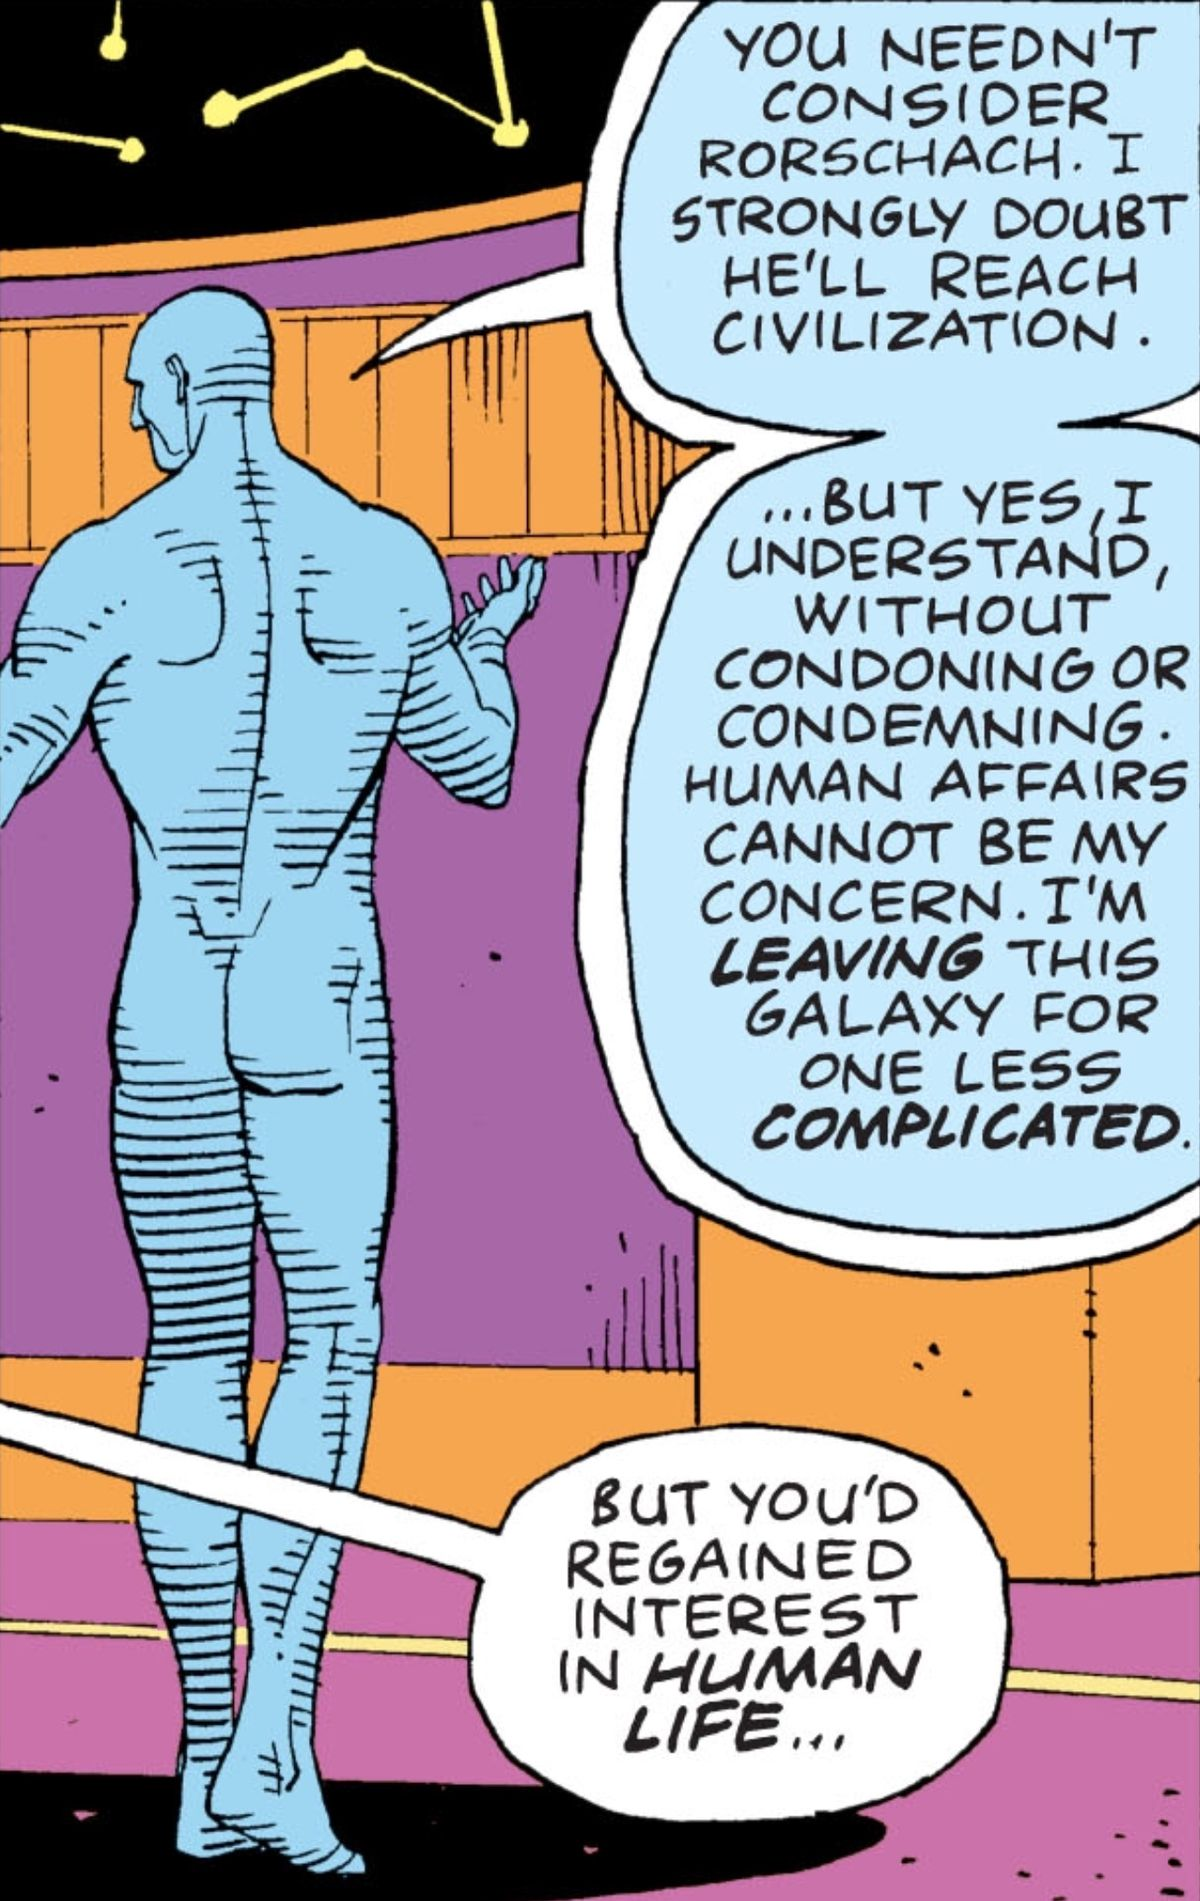 """Doctor Manhattan says that he doesn't think Rorschach will be a threat, and that he's """"leaving this galaxy for one less complicated."""" """"But you'd regained interest in human life.."""" Ozymandias counters, in Watchmen, DC Comics (1986)."""